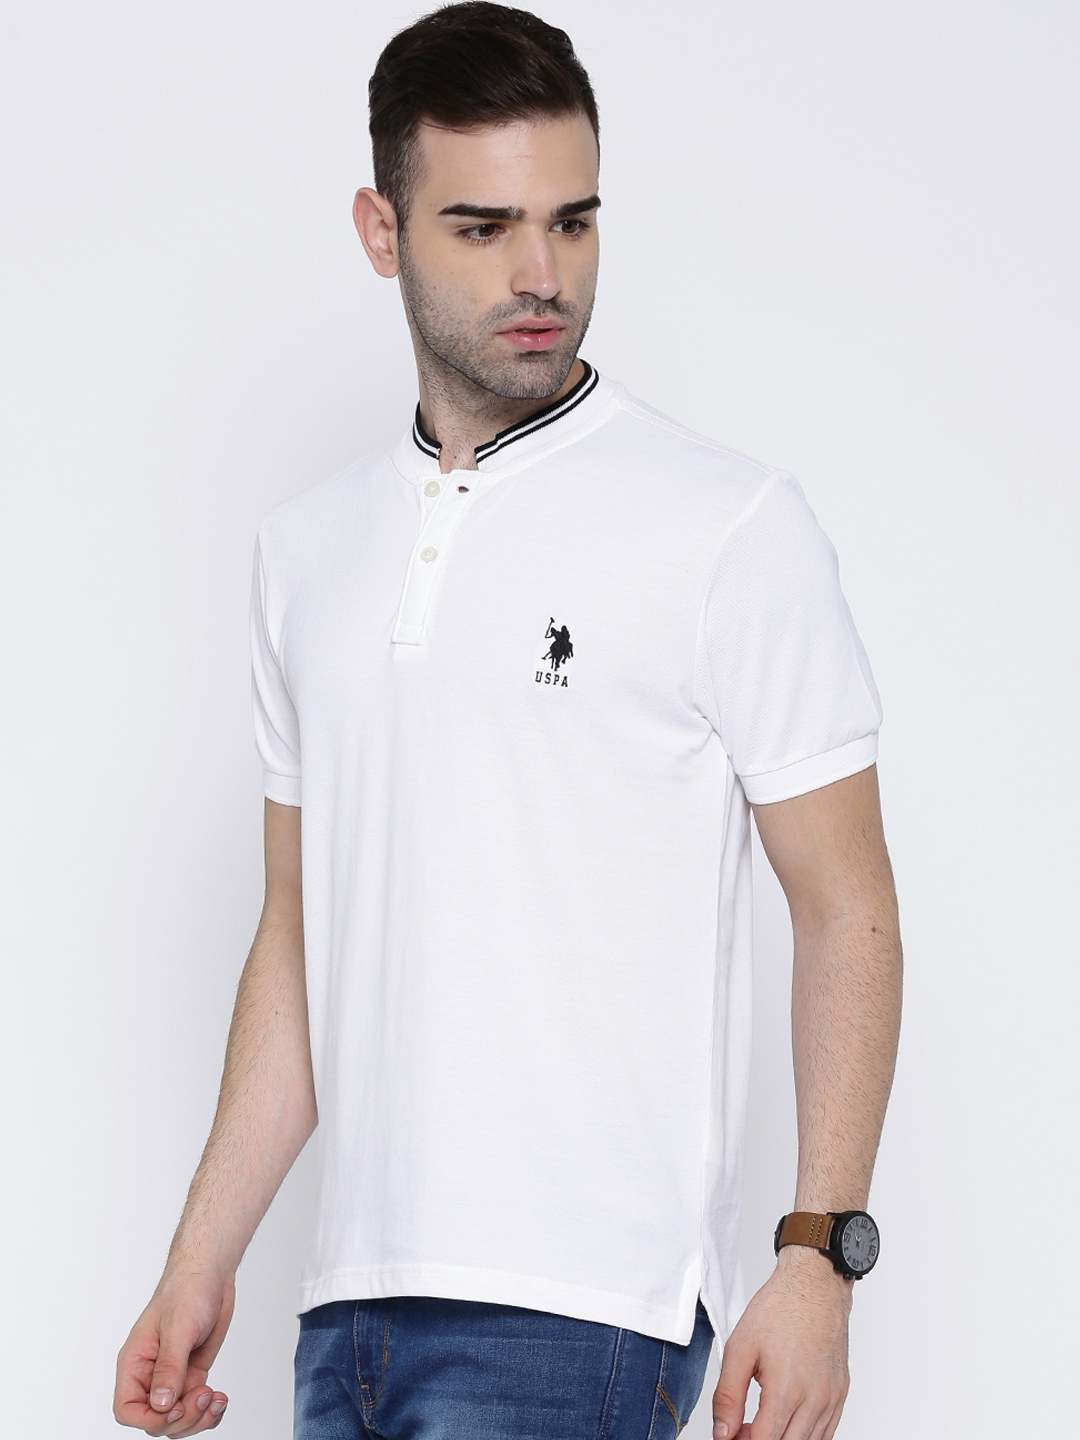 Buy U S Polo Assn White T Shirt Tshirts For Men 1417327 Myntra